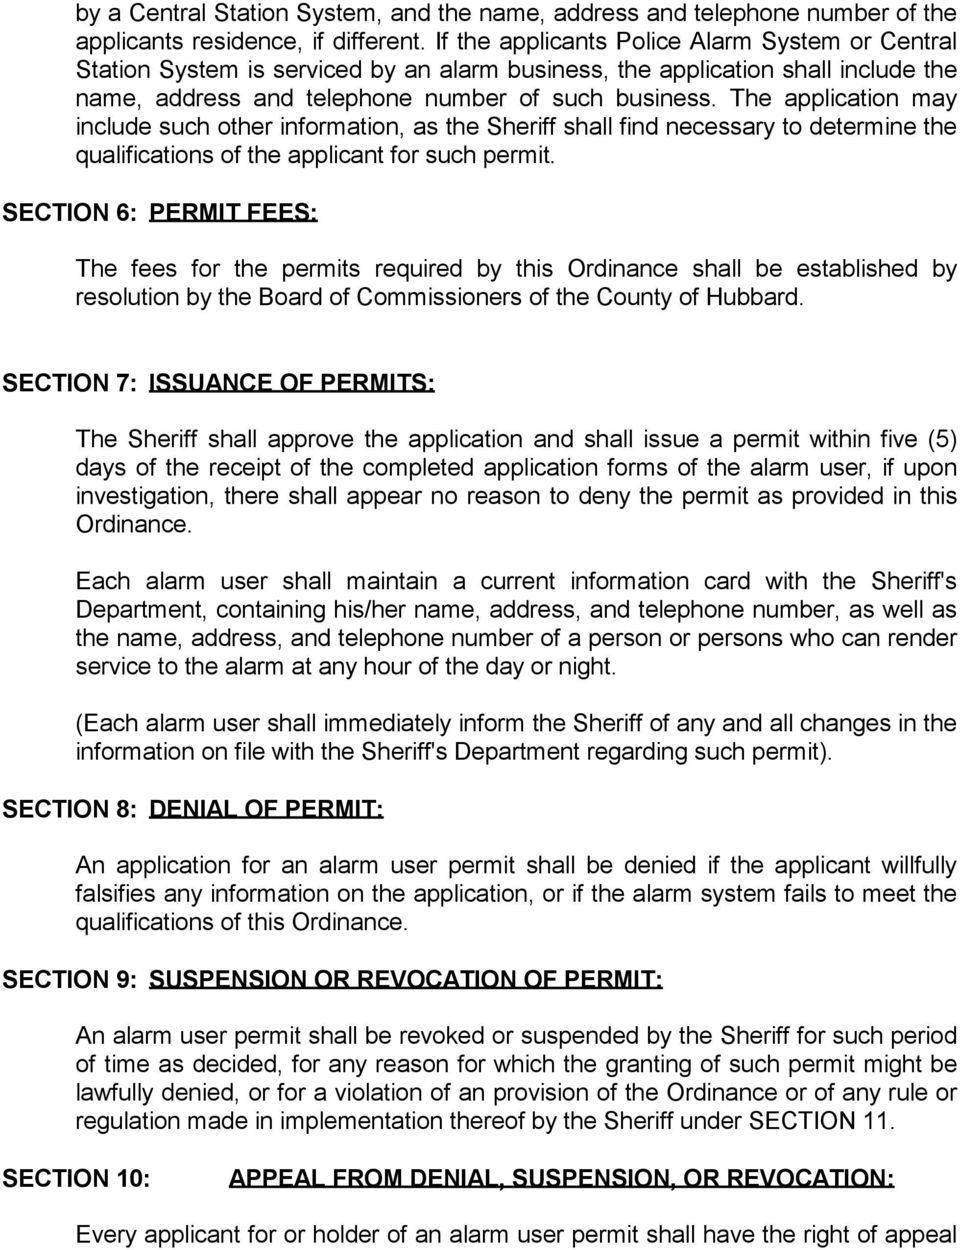 The application may include such other information, as the Sheriff shall find necessary to determine the qualifications of the applicant for such permit.